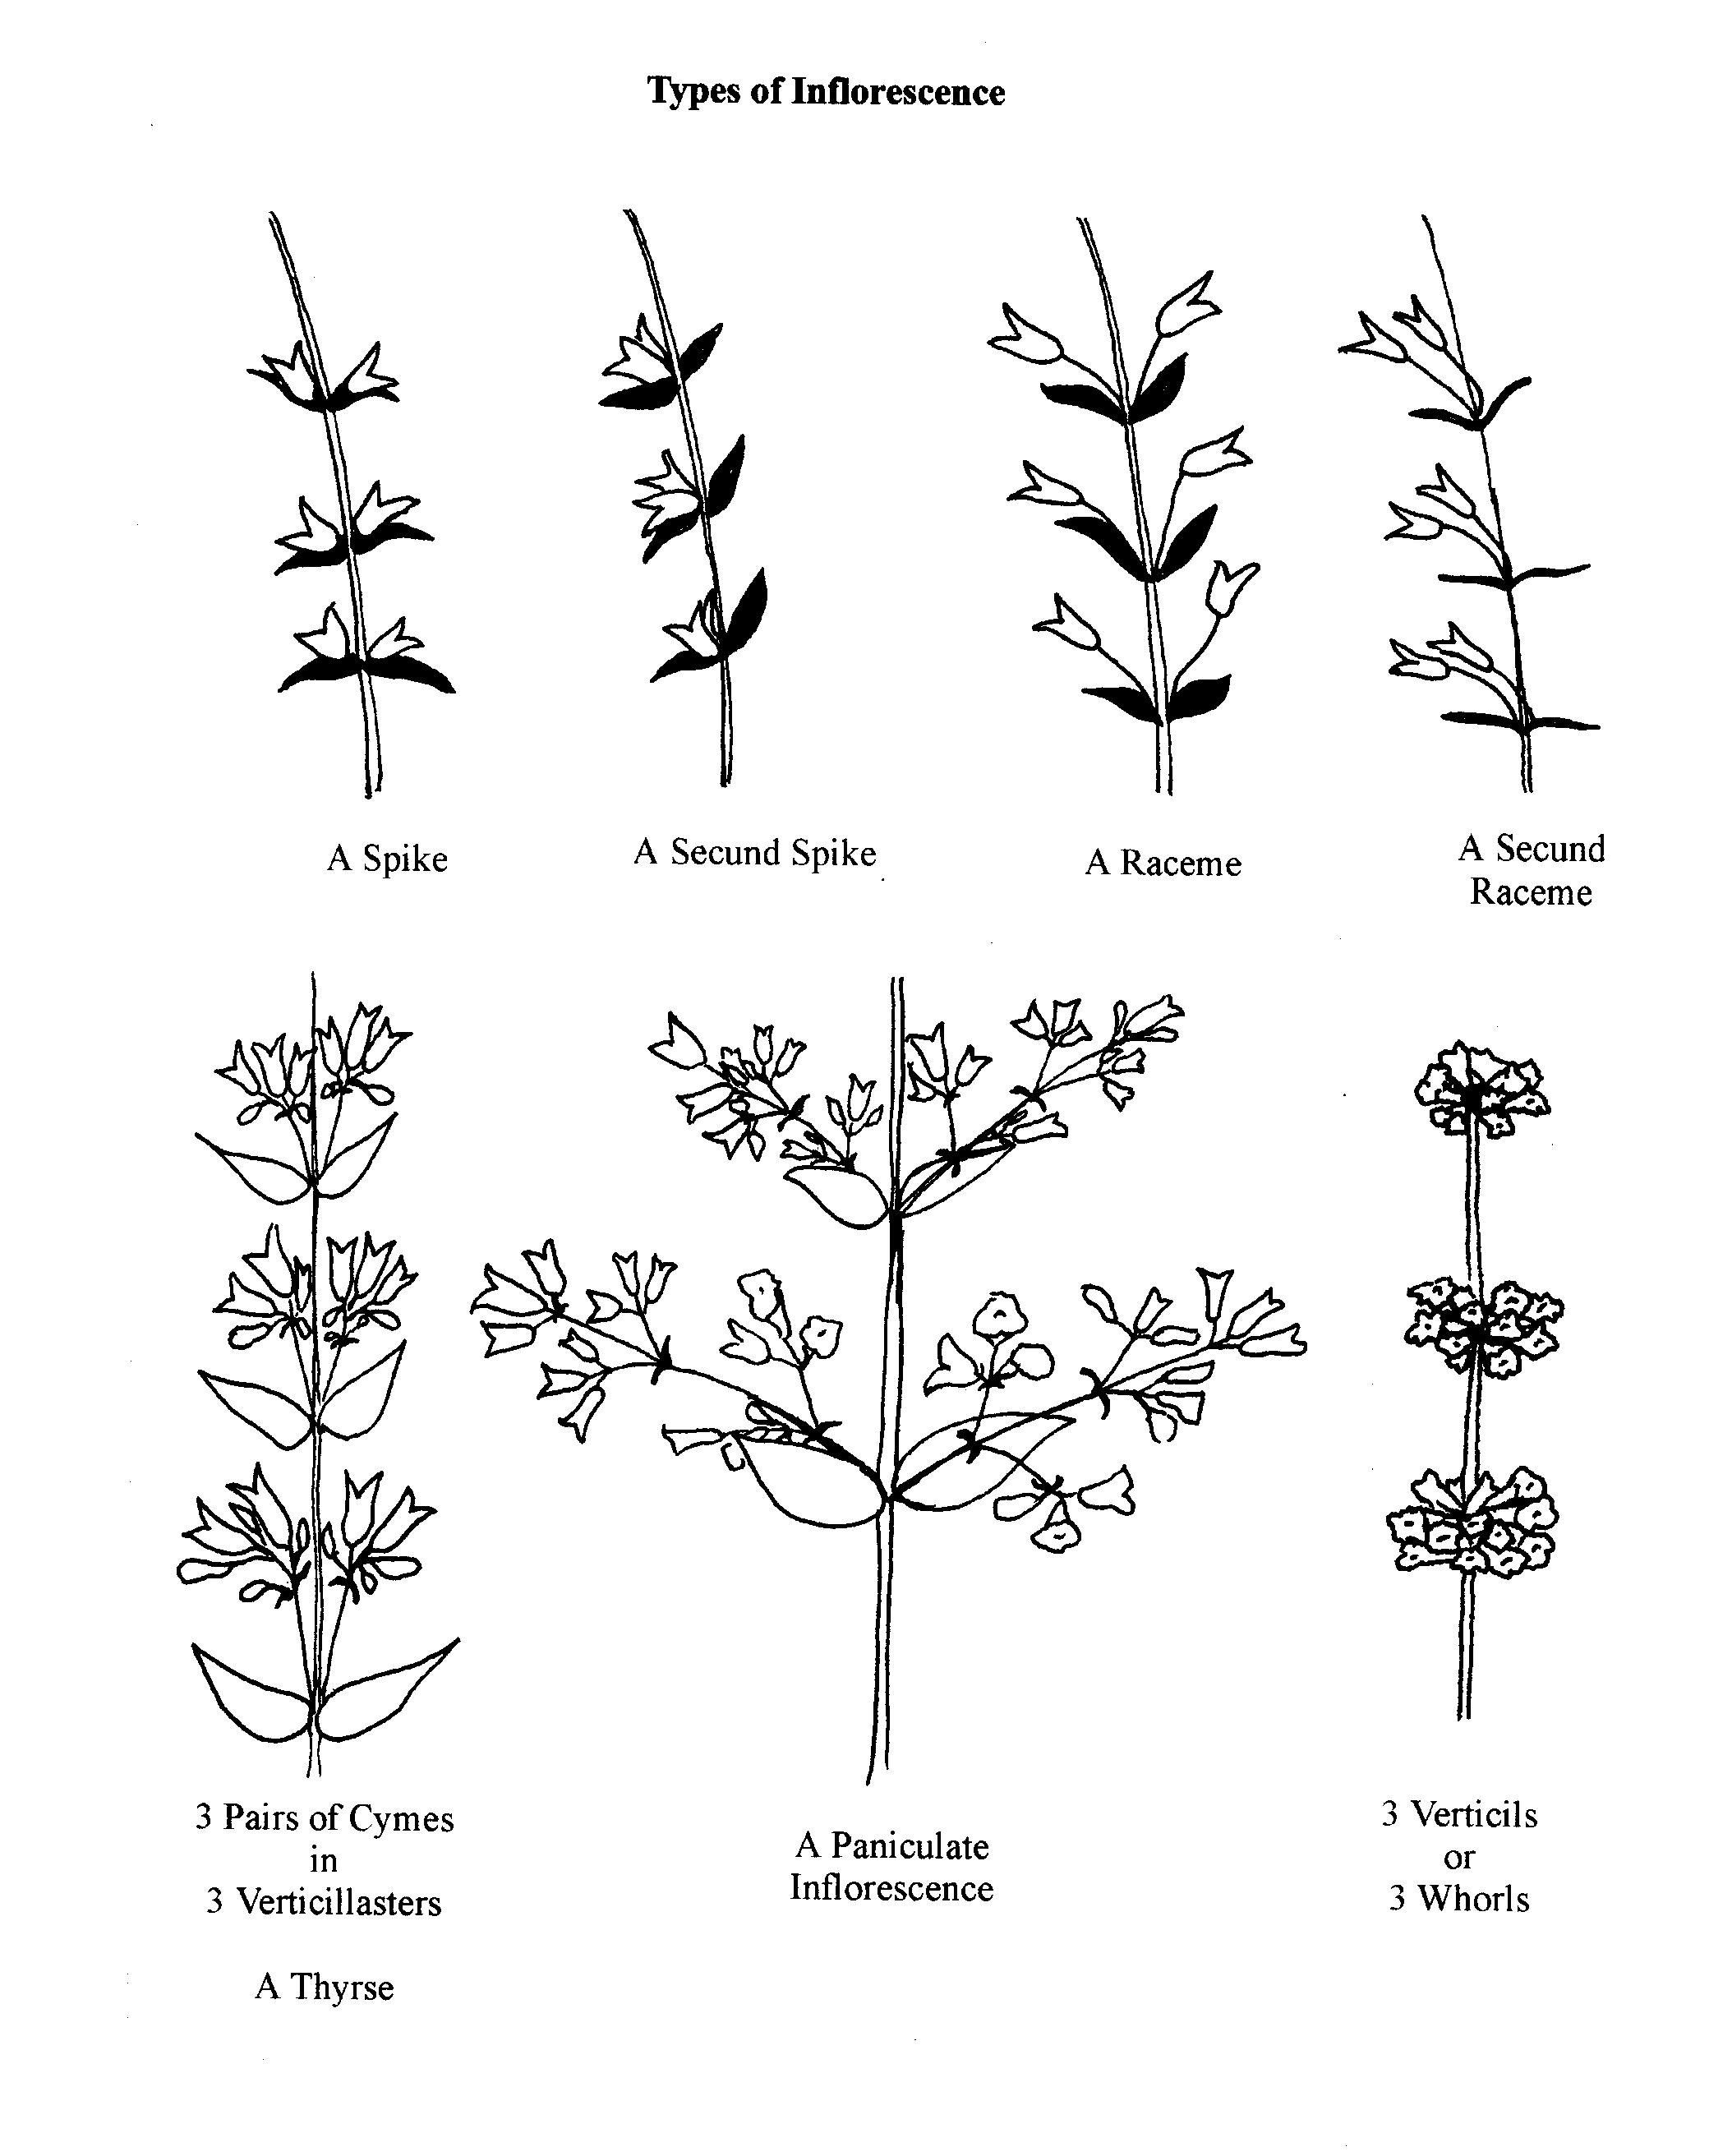 various inflorescense types.